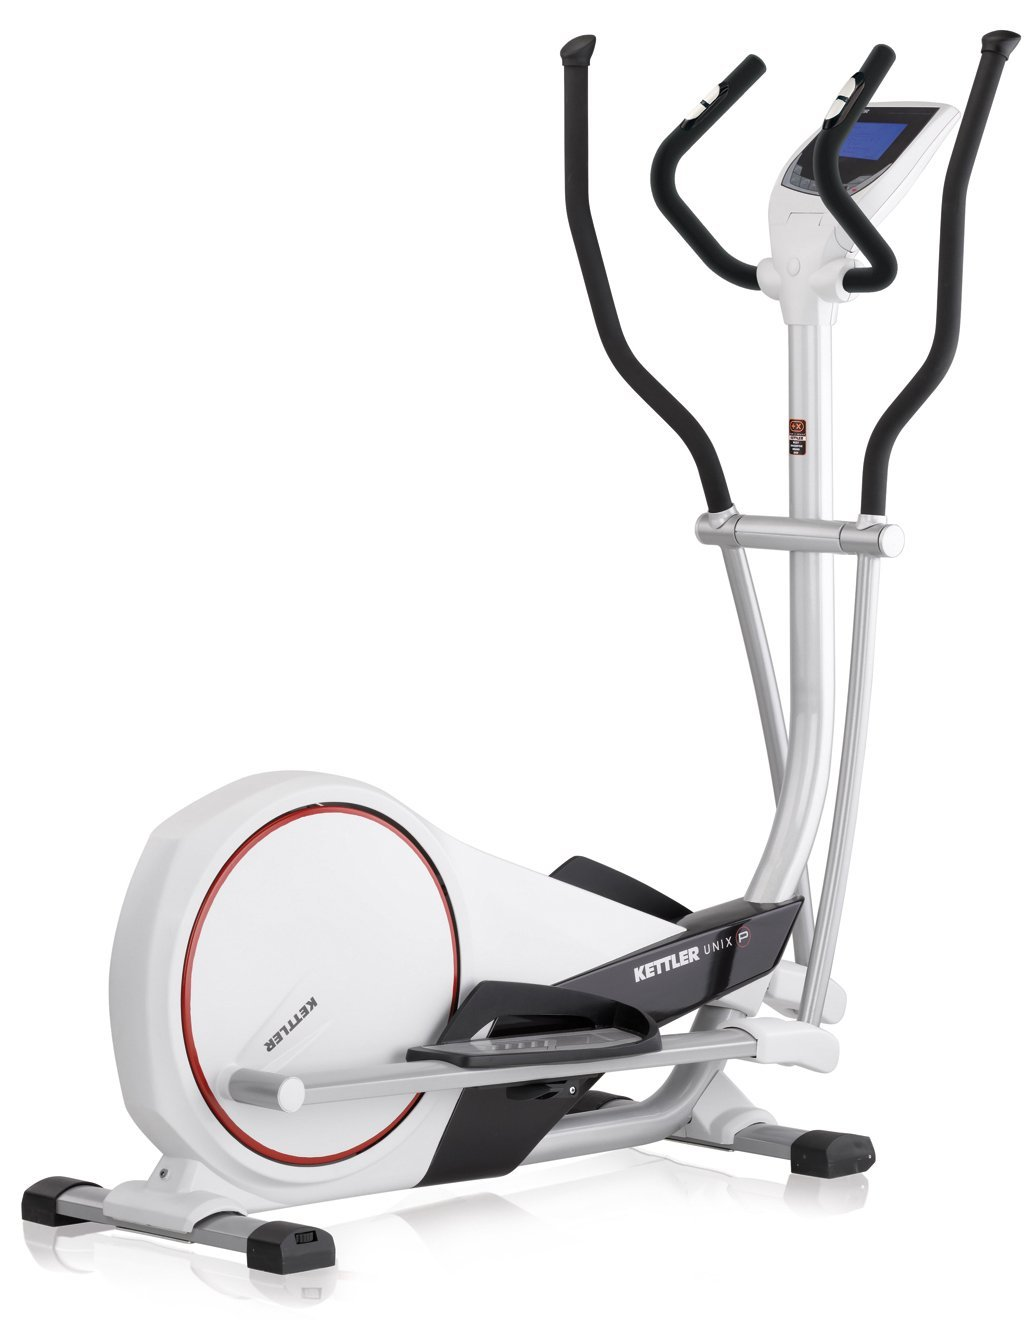 Kettler Fitness Kettler Unix P Programmable Elliptical Trainer Zbuys